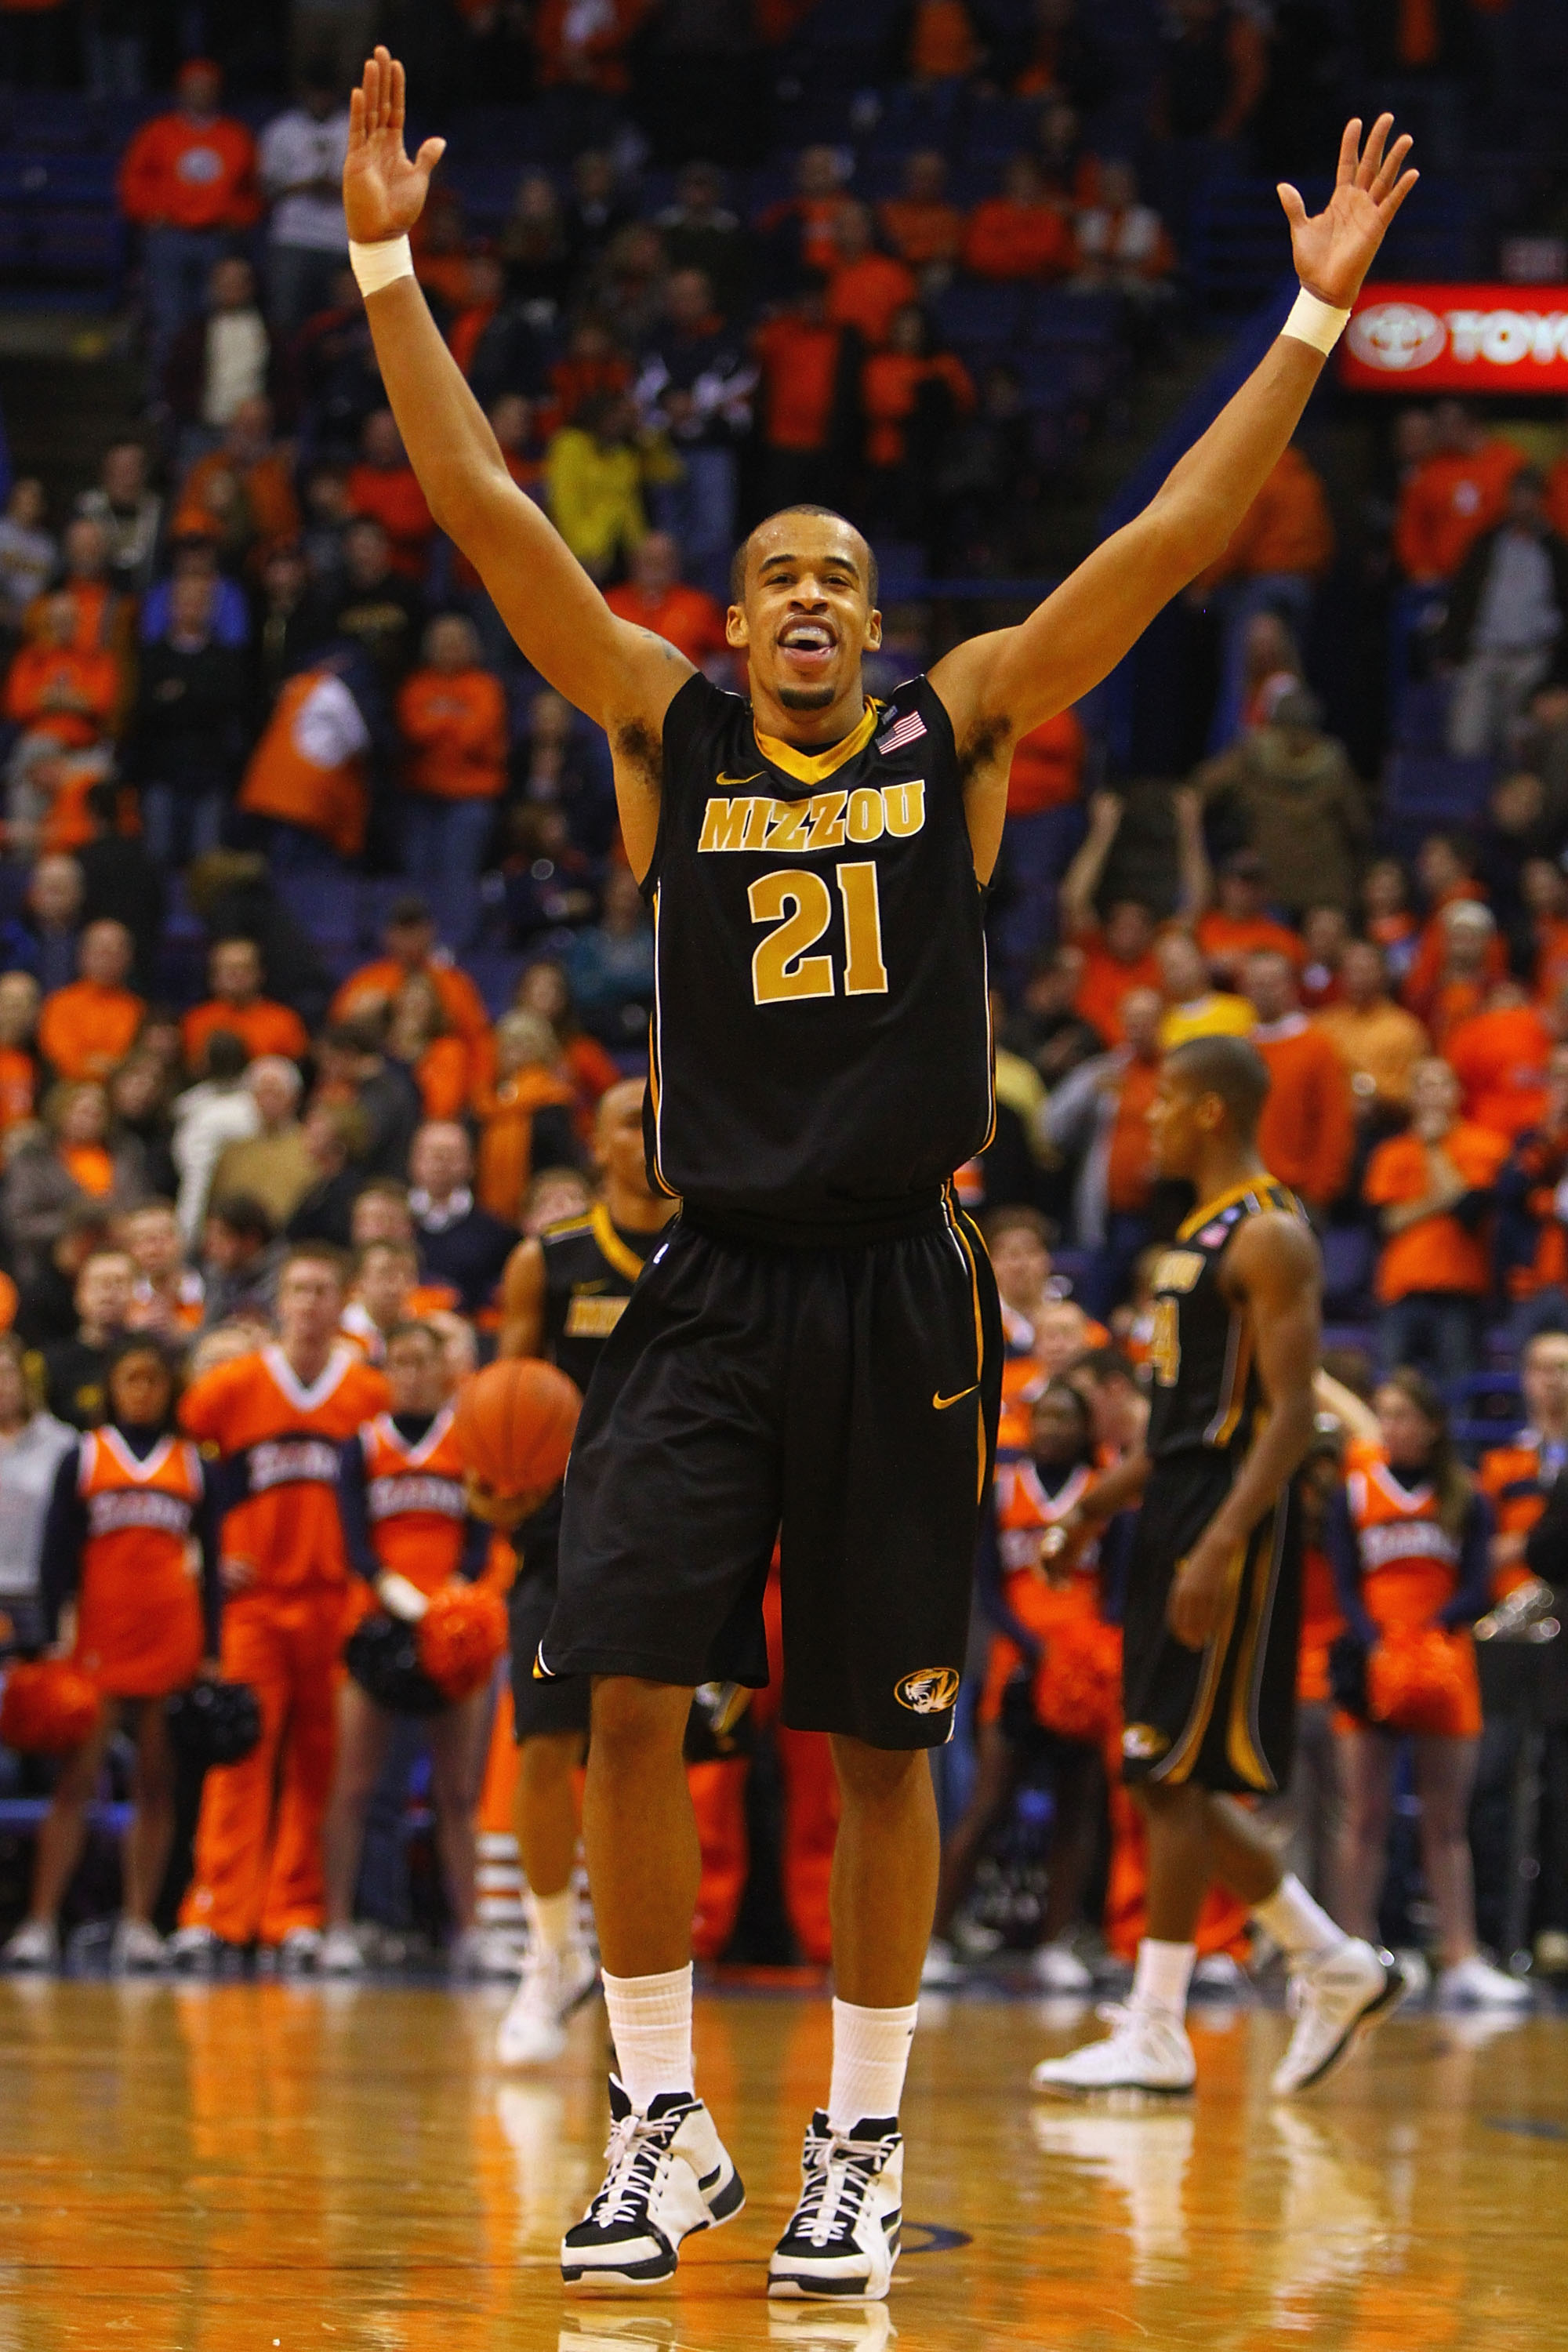 ST. LOUIS, MO - DECEMBER 22: Laurence Bowers #21 of the Missouri Tigers celebrates the Tigers victory over Illinois Fighting Illini during the Busch Braggin' Rights game at the Scottrade Center on December 22, 2010 in St. Louis, Missouri.  The Tigers beat